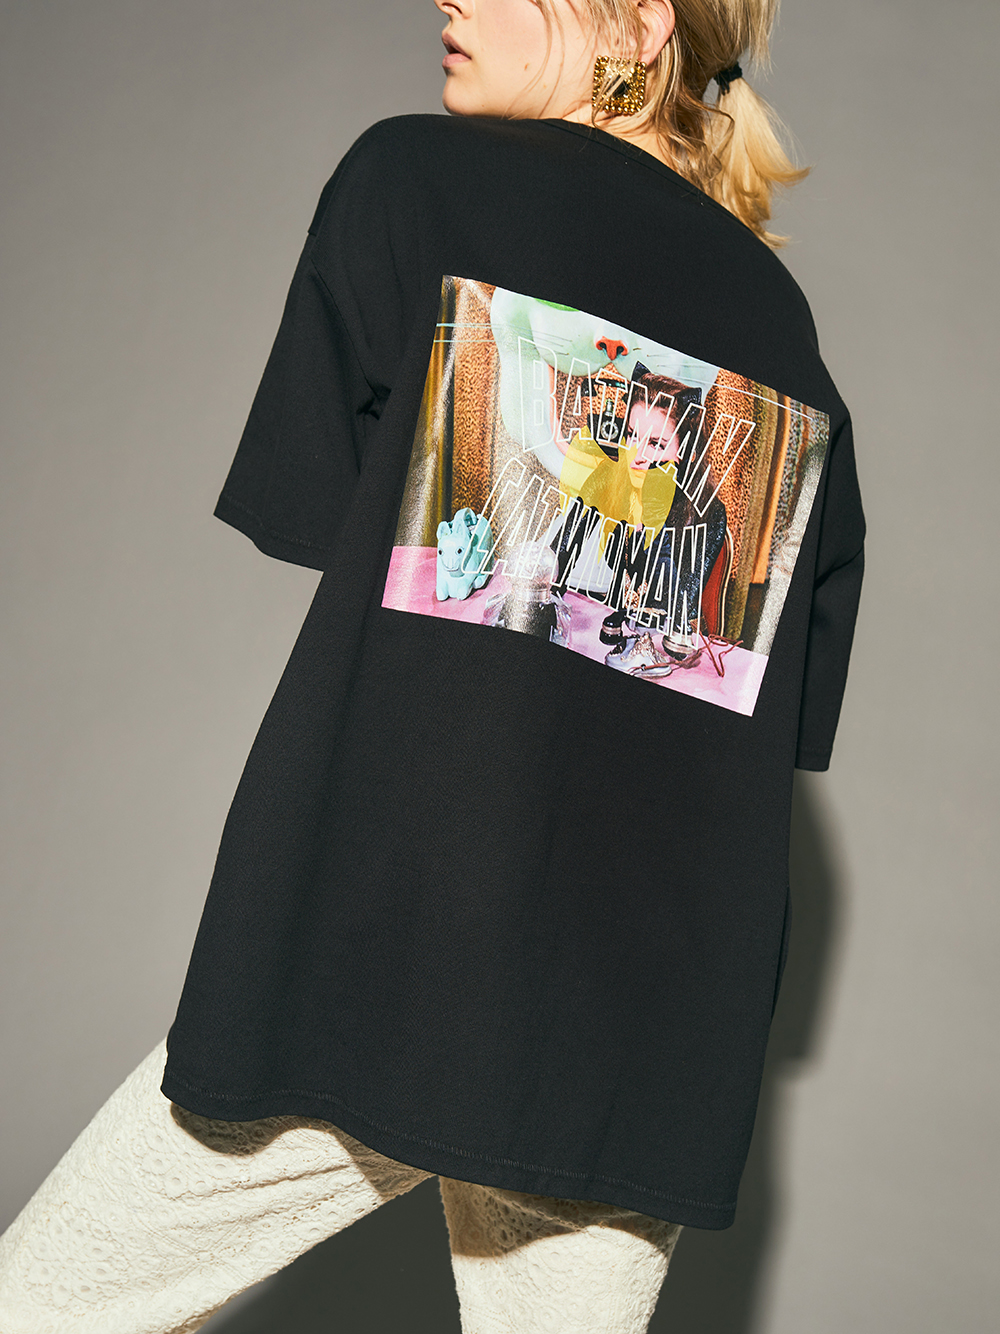 CATWOMANプリントBIGTシャツ